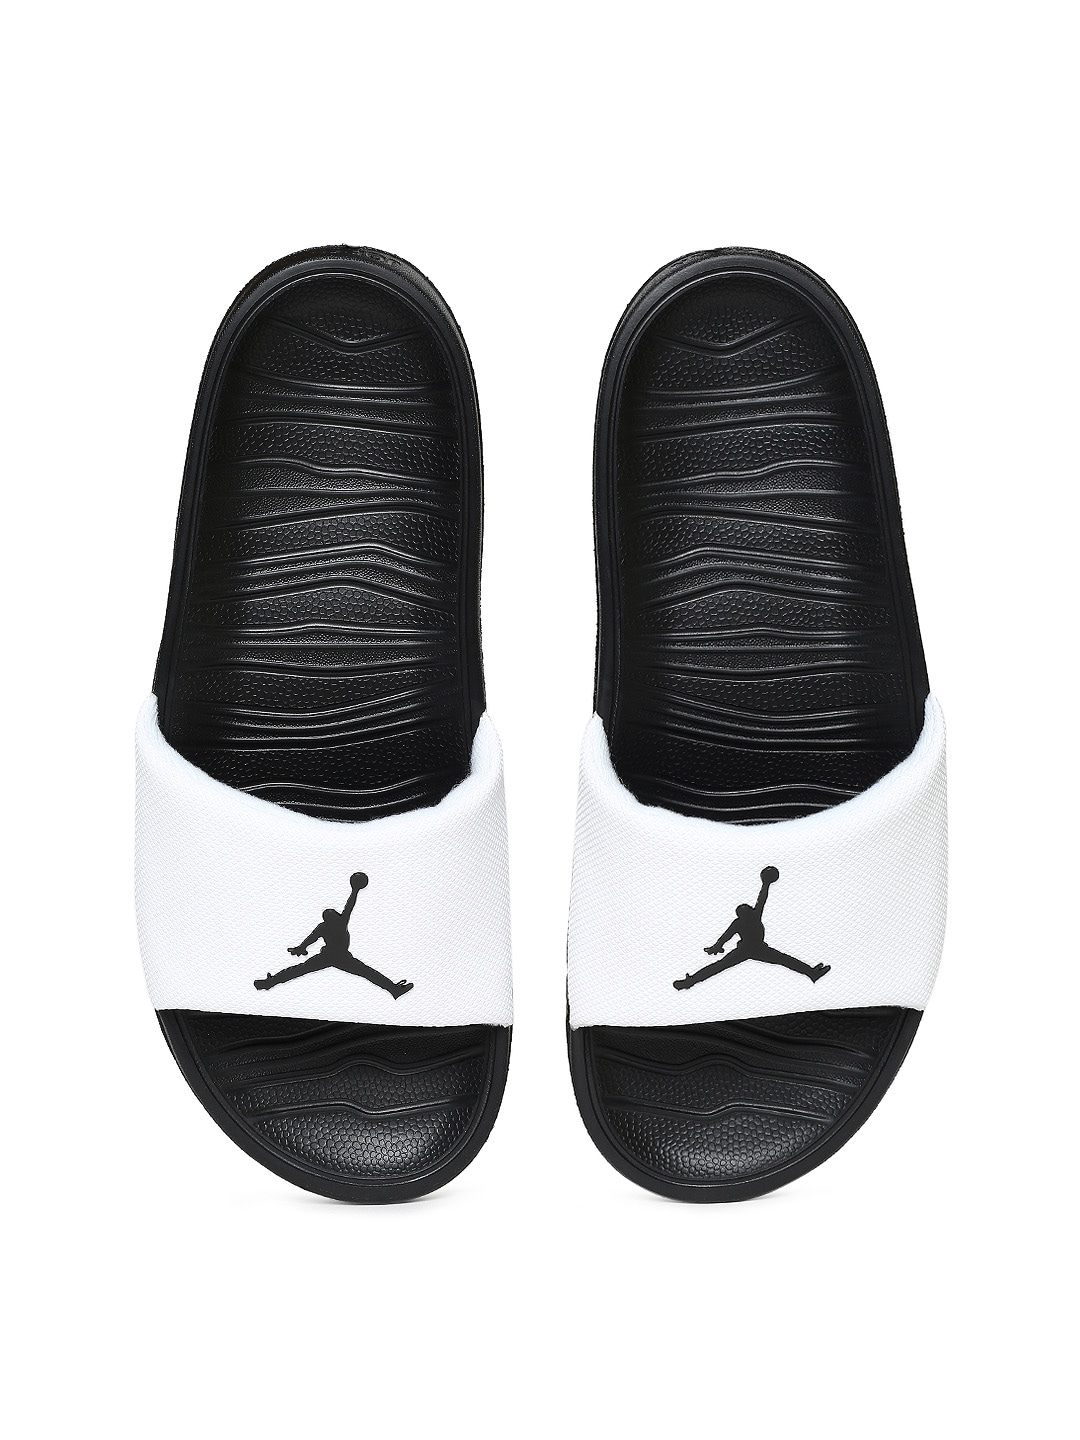 new arrival 2eb32 962c7 Jordan Shoes - Buy Jordan Shoes For Men Online in India   Myntra